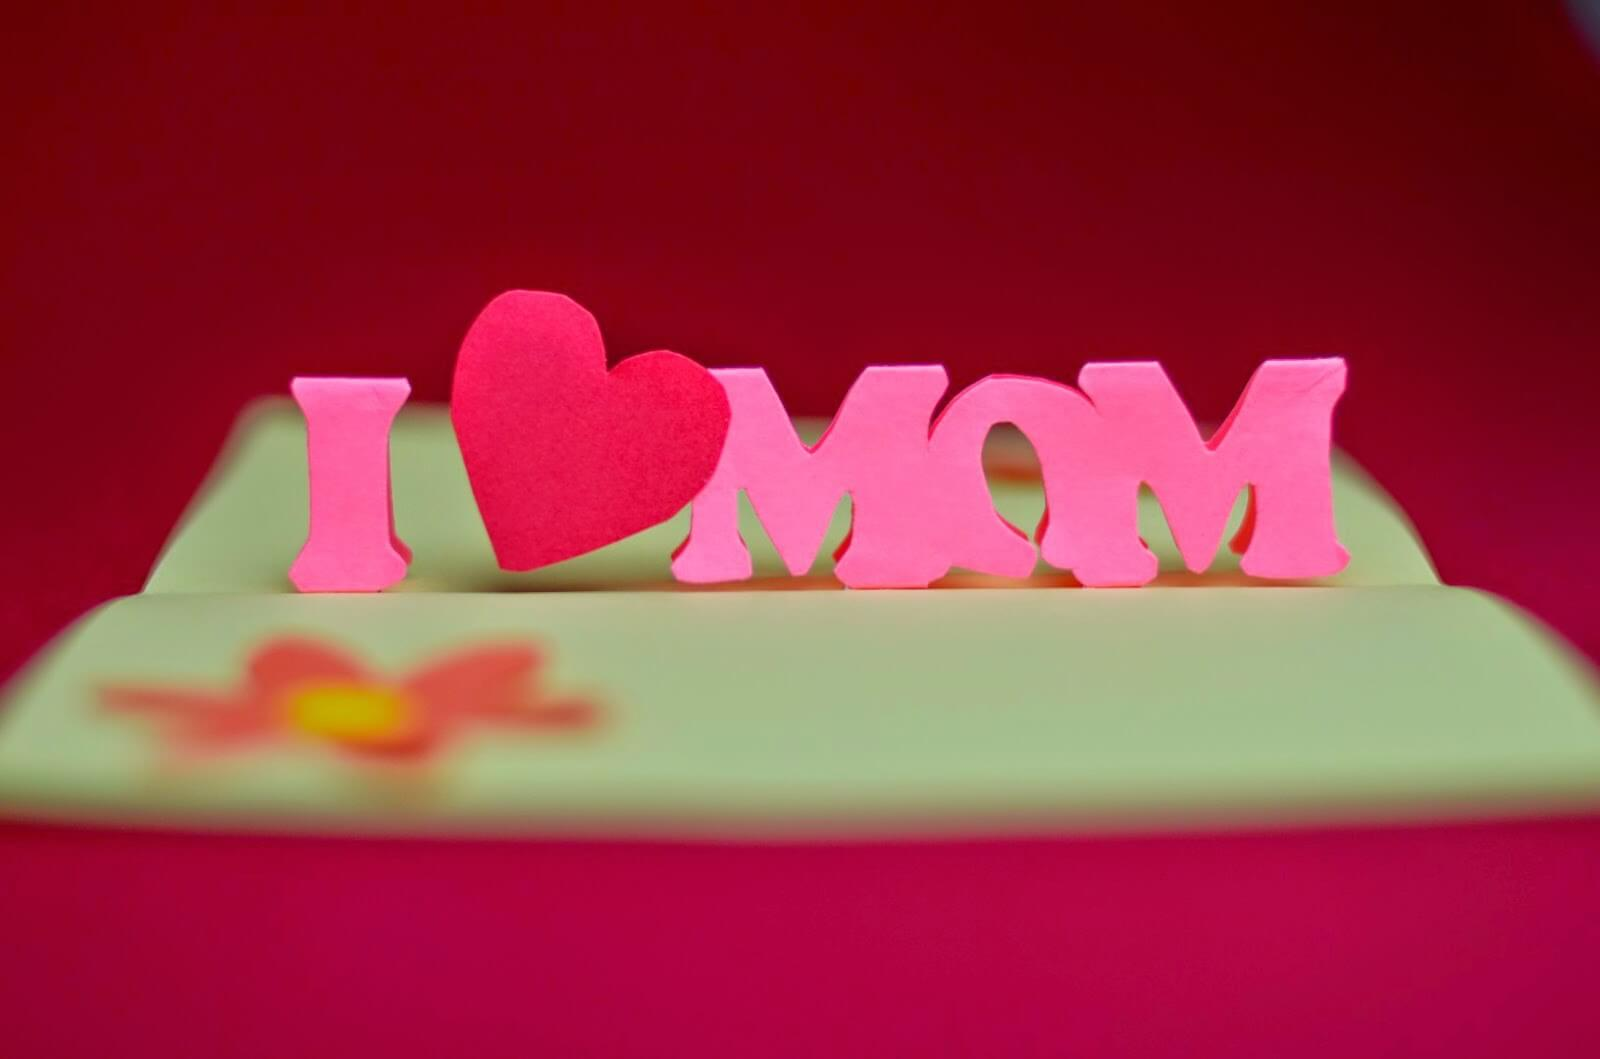 Happy Mothers Day Love Mom Wishes Hd Wallpaper   Mothers Day Hd 1600x1059